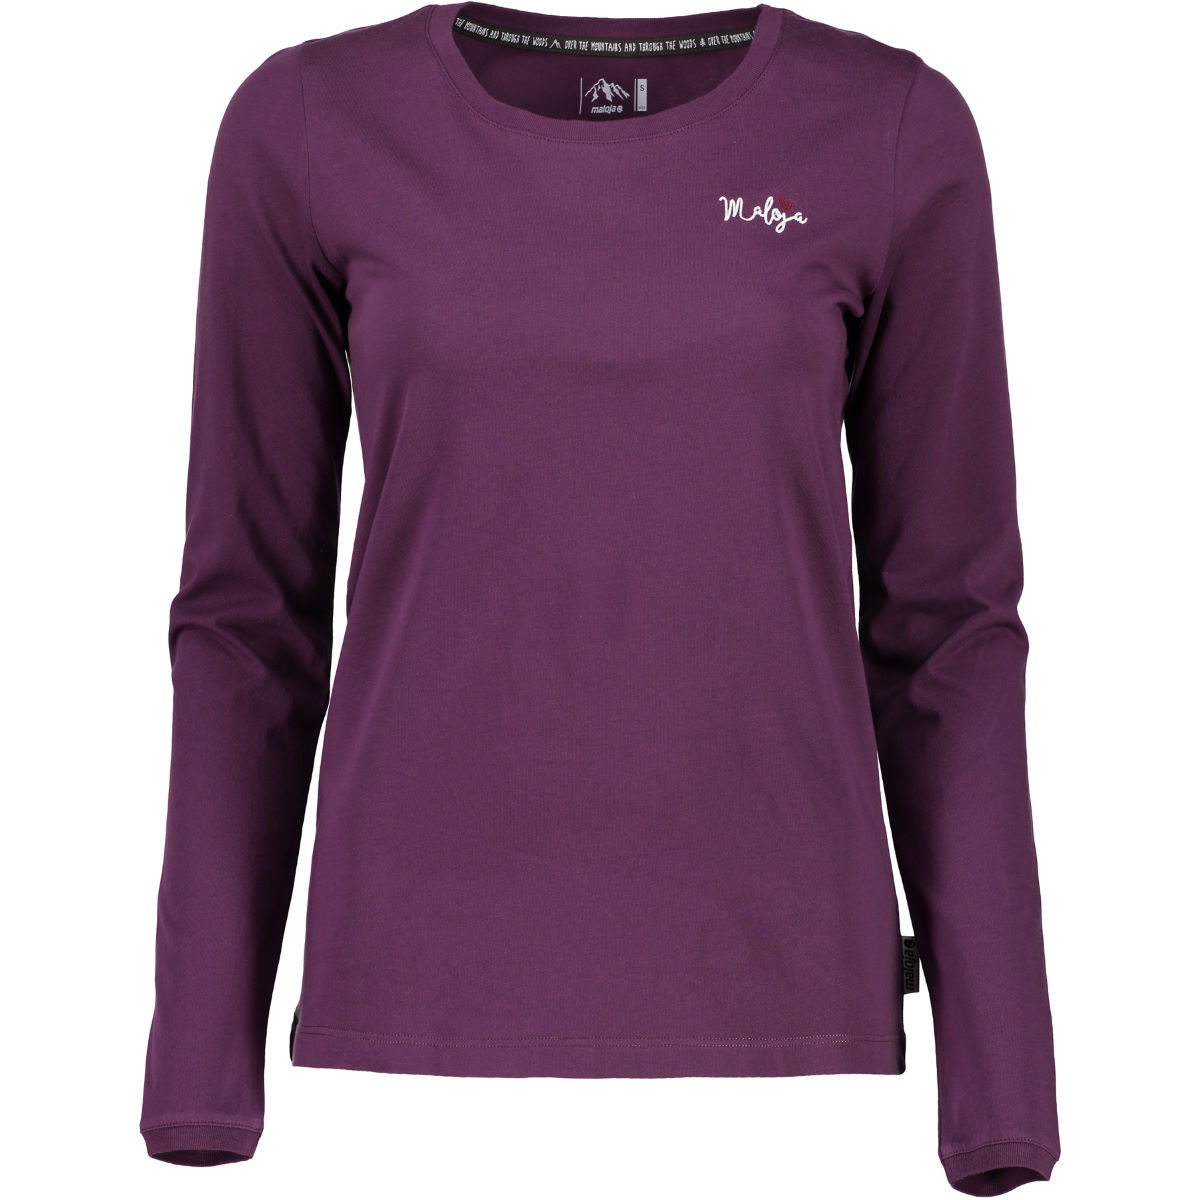 Maillot Femme Maloja EsbjergM. (manches longues) - XL Plum T-shirts